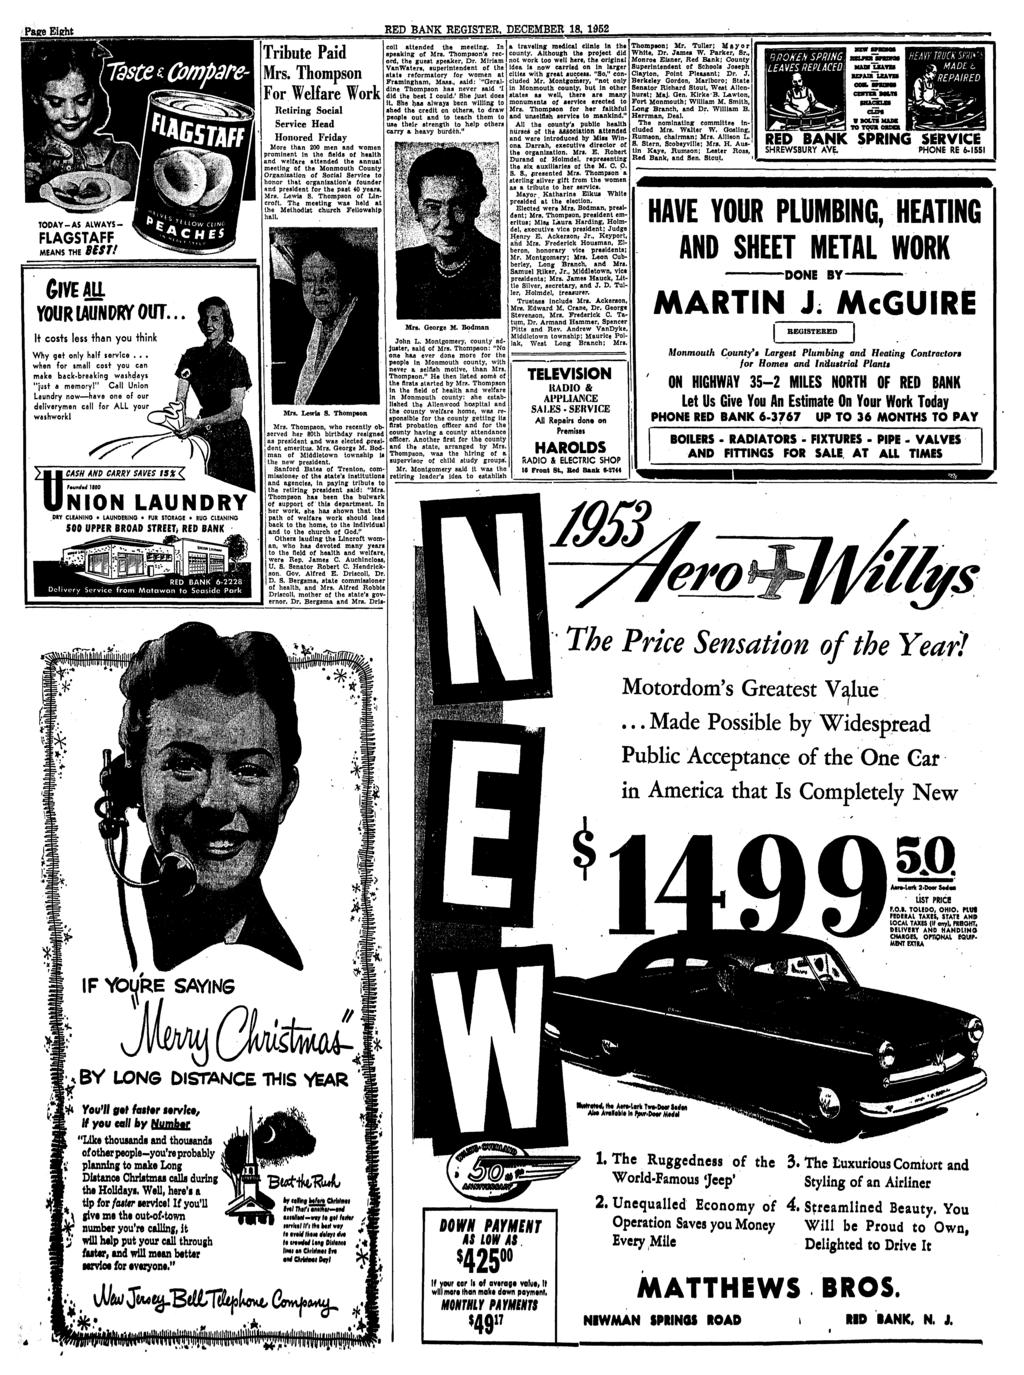 red bank register this paper will be issued pdf 1957 Chevy 4 Door poc red bank register december 18 1952 today as always flagstaff means